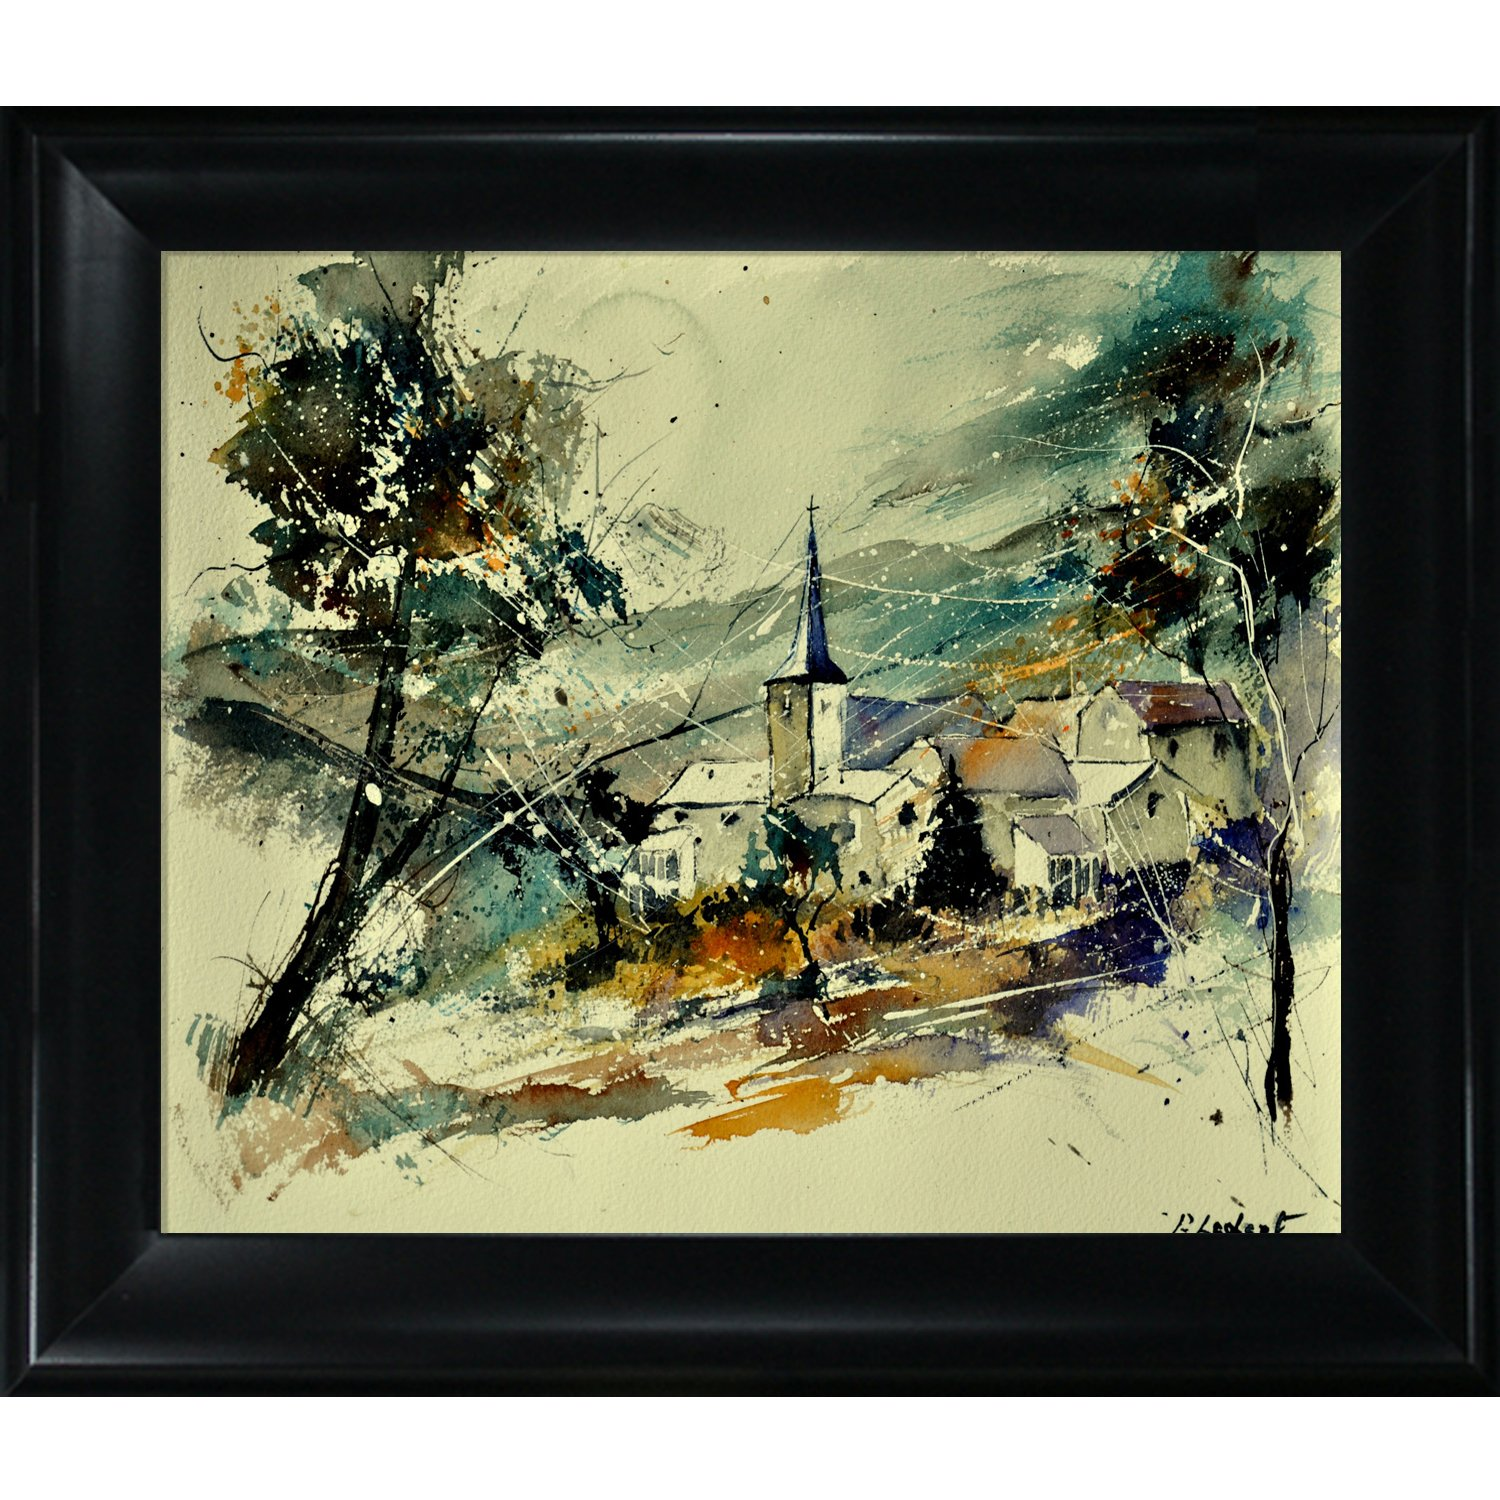 overstockArt 115022 Watercolor Print on Canvas with Black Satin King Frame by Pol Ledent